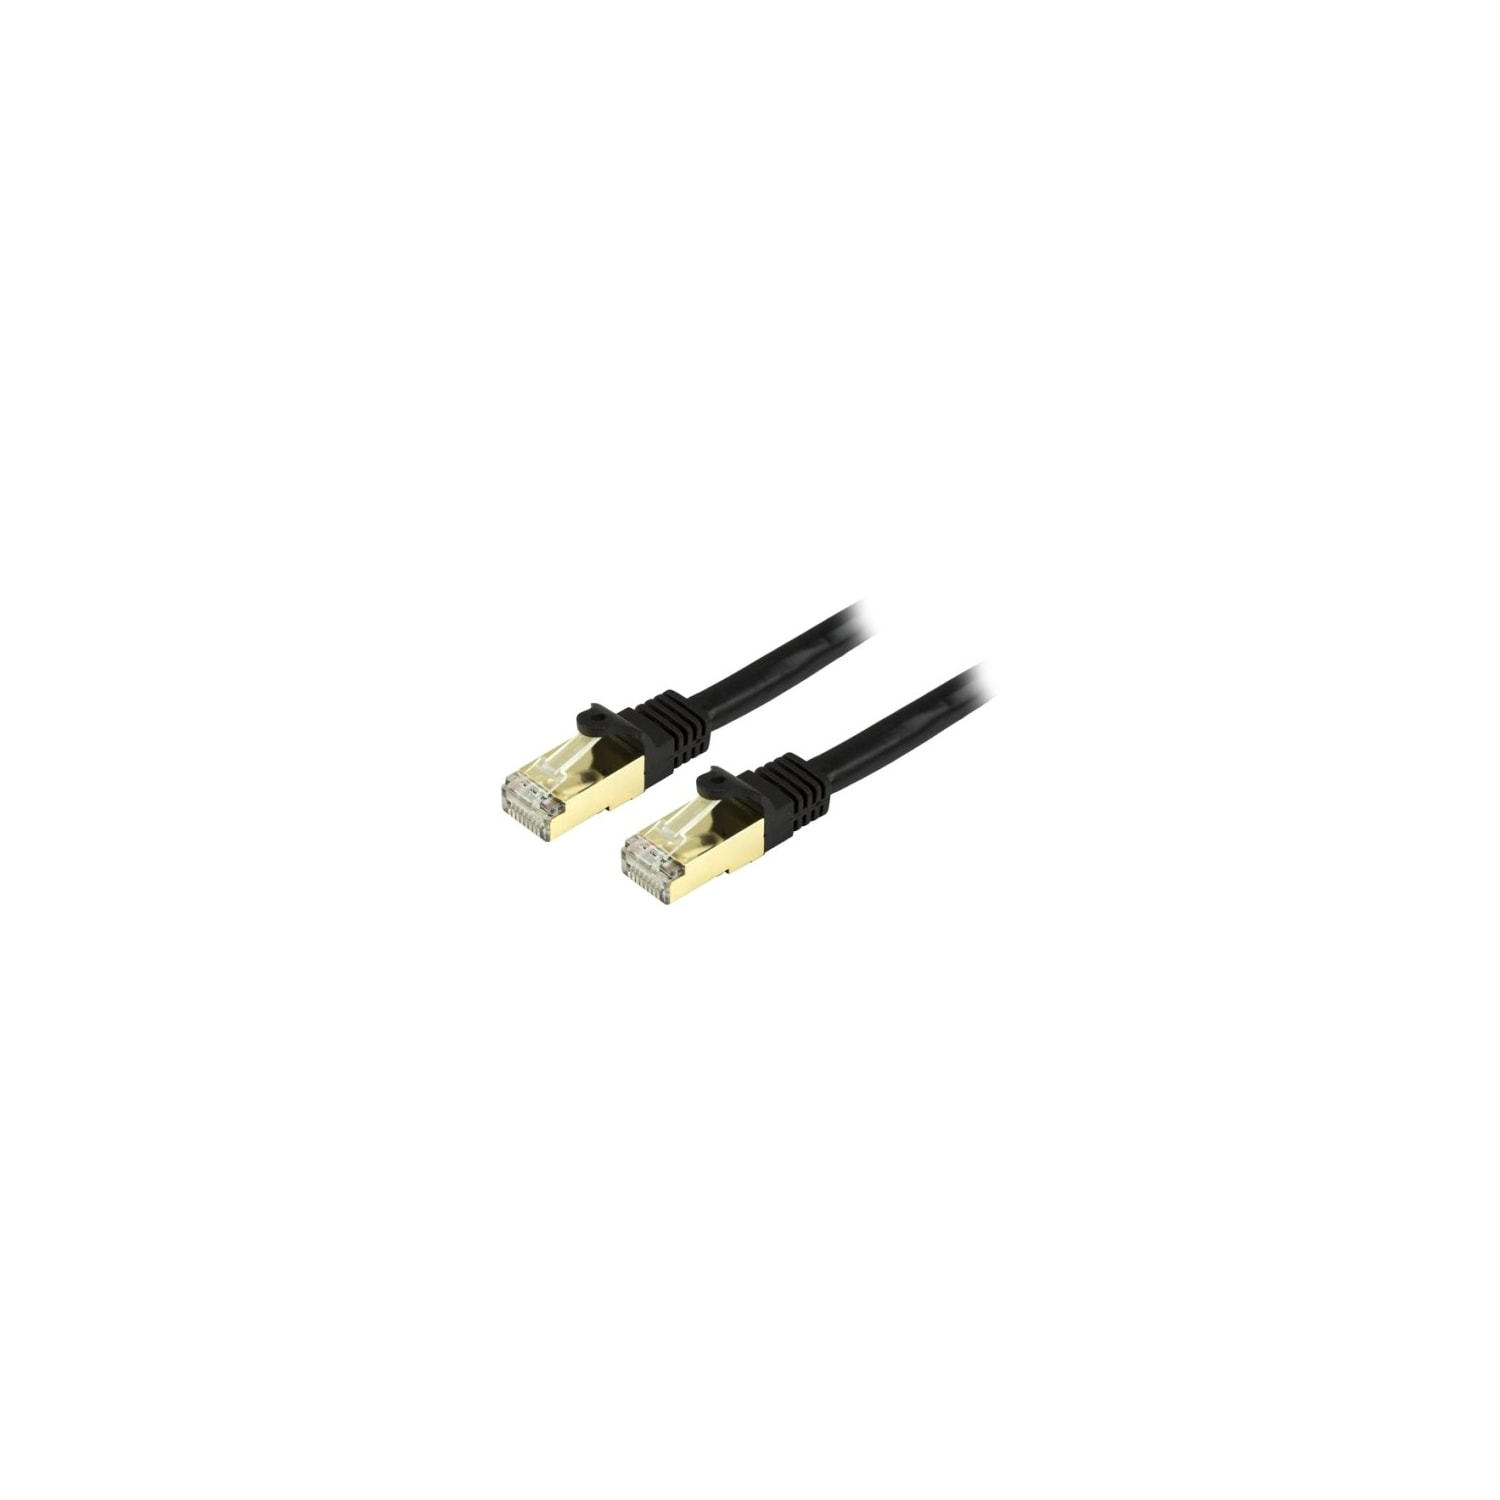 Buy Startechcom Category 6a Network Cable For Device Hub Patch Panel Wiring Switch Router